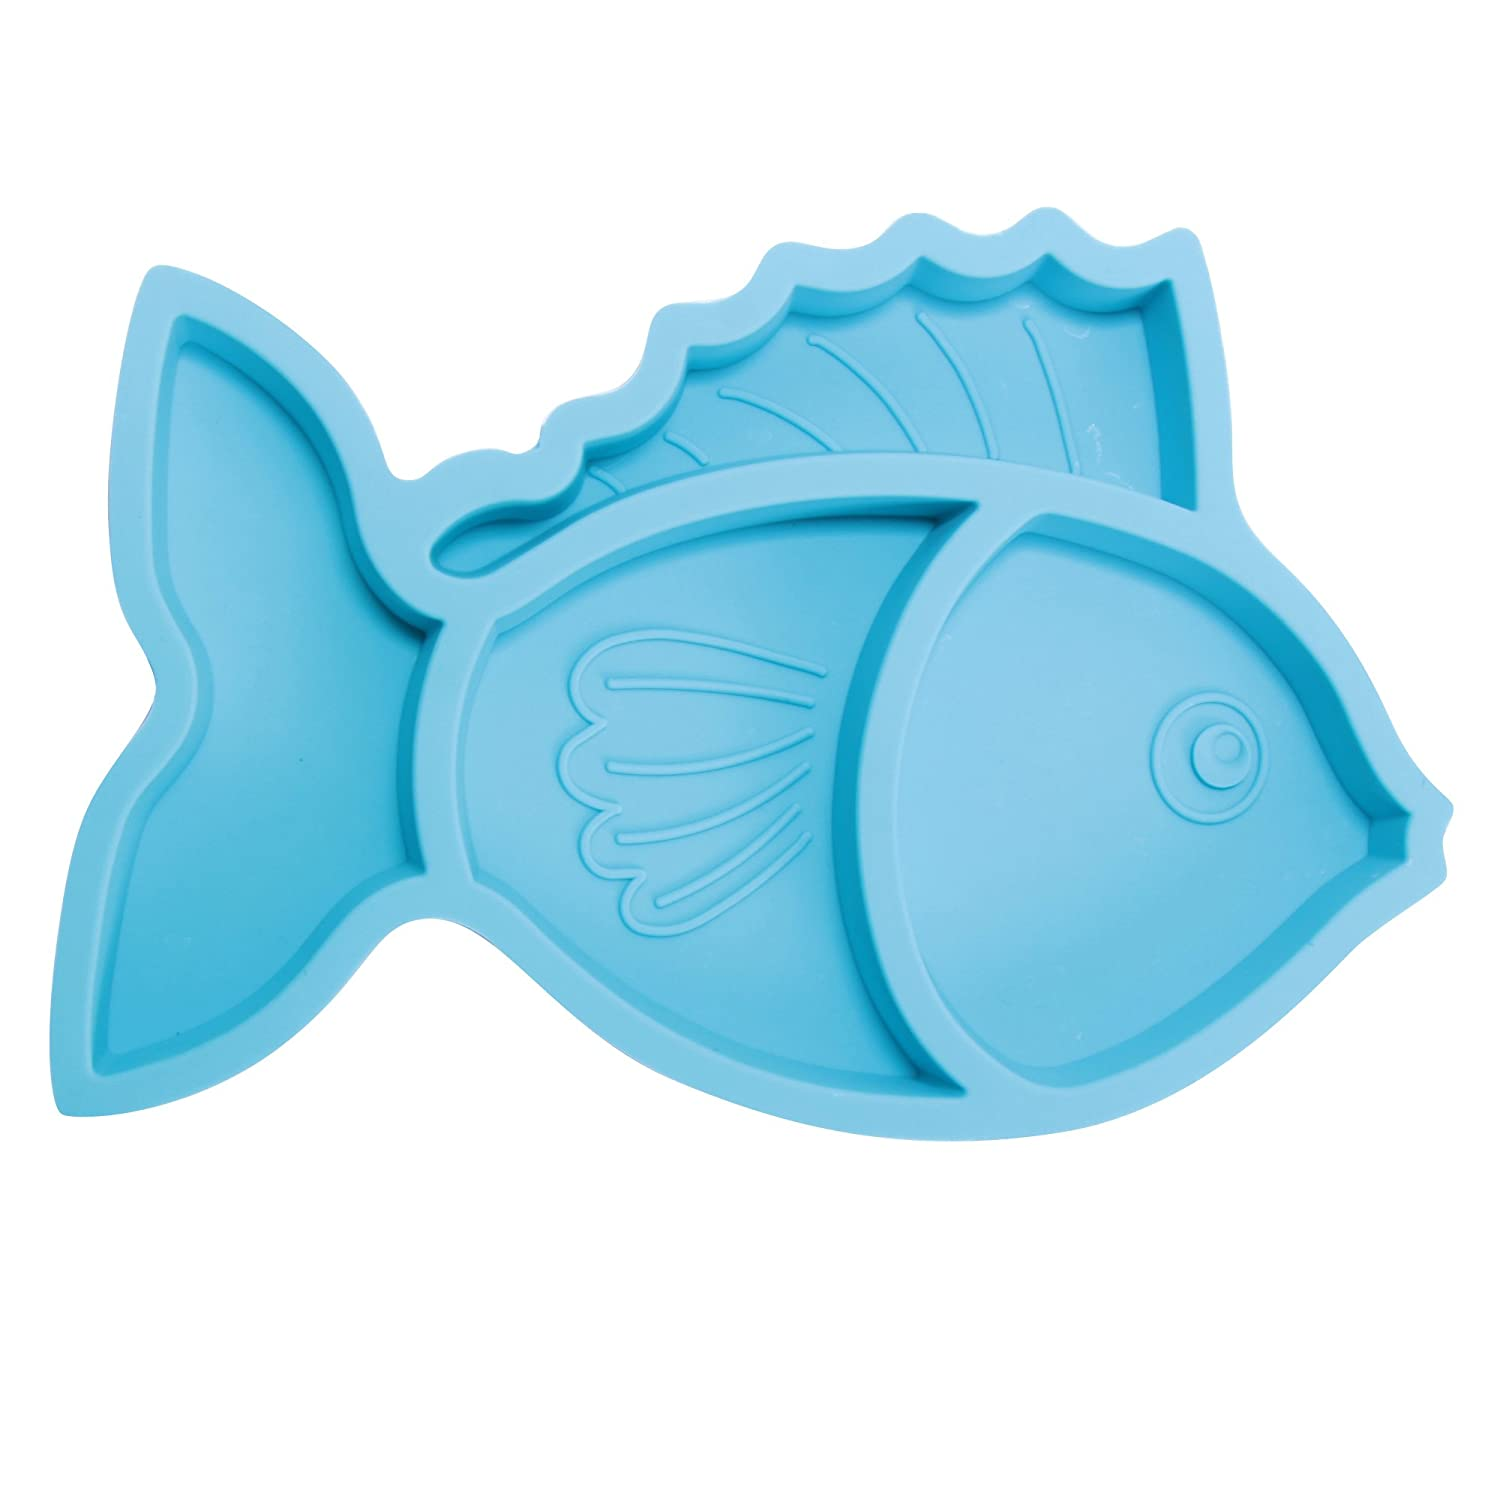 Brinware Silicone Baby Plates Non Slip Divided Dish for Toddlers and Kids - Blue Fish